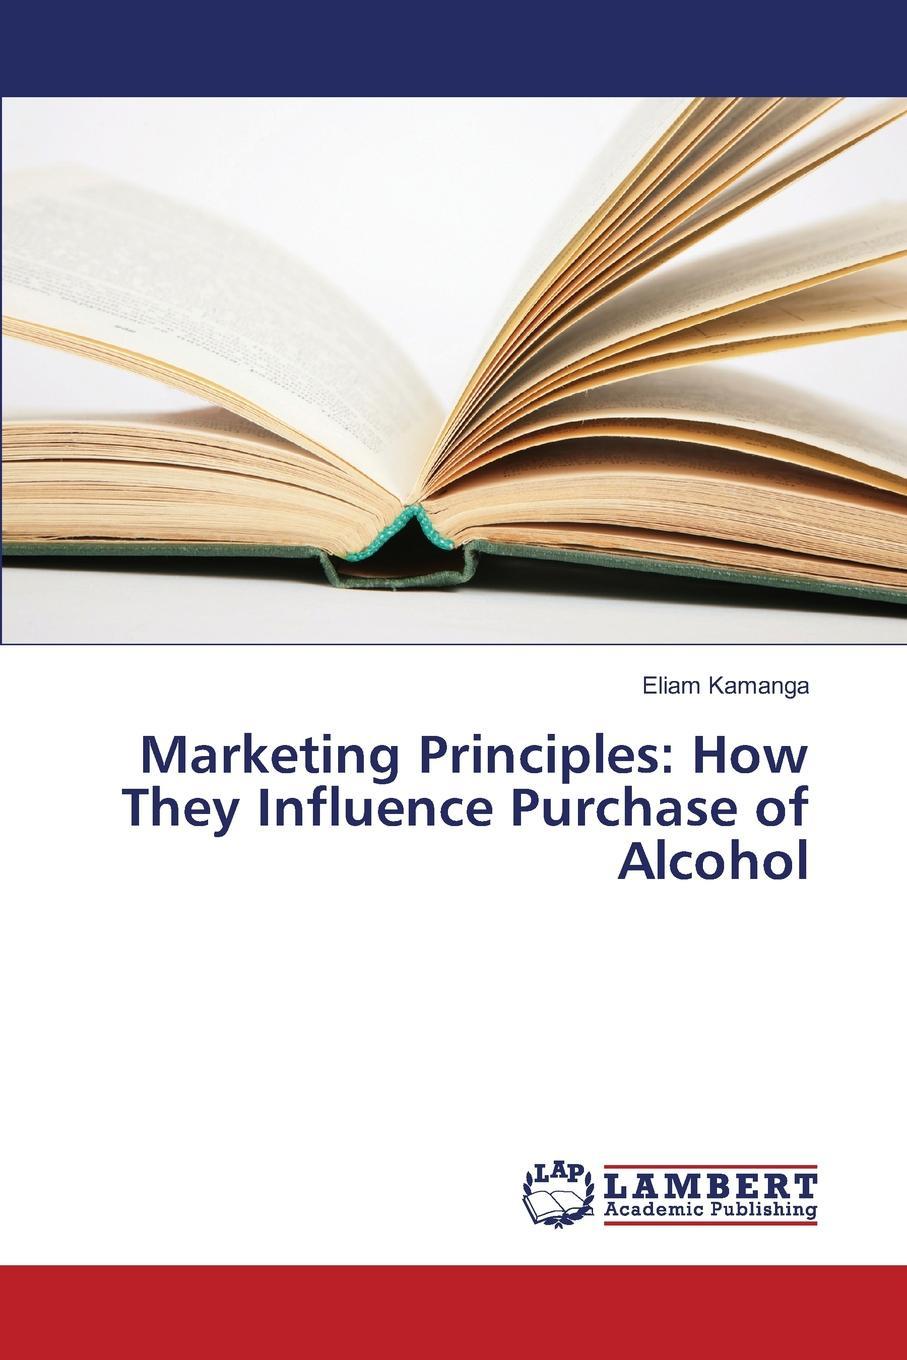 Marketing Principles. How They Influence Purchase of Alcohol The concepts contained in this book constitute a practical approach...